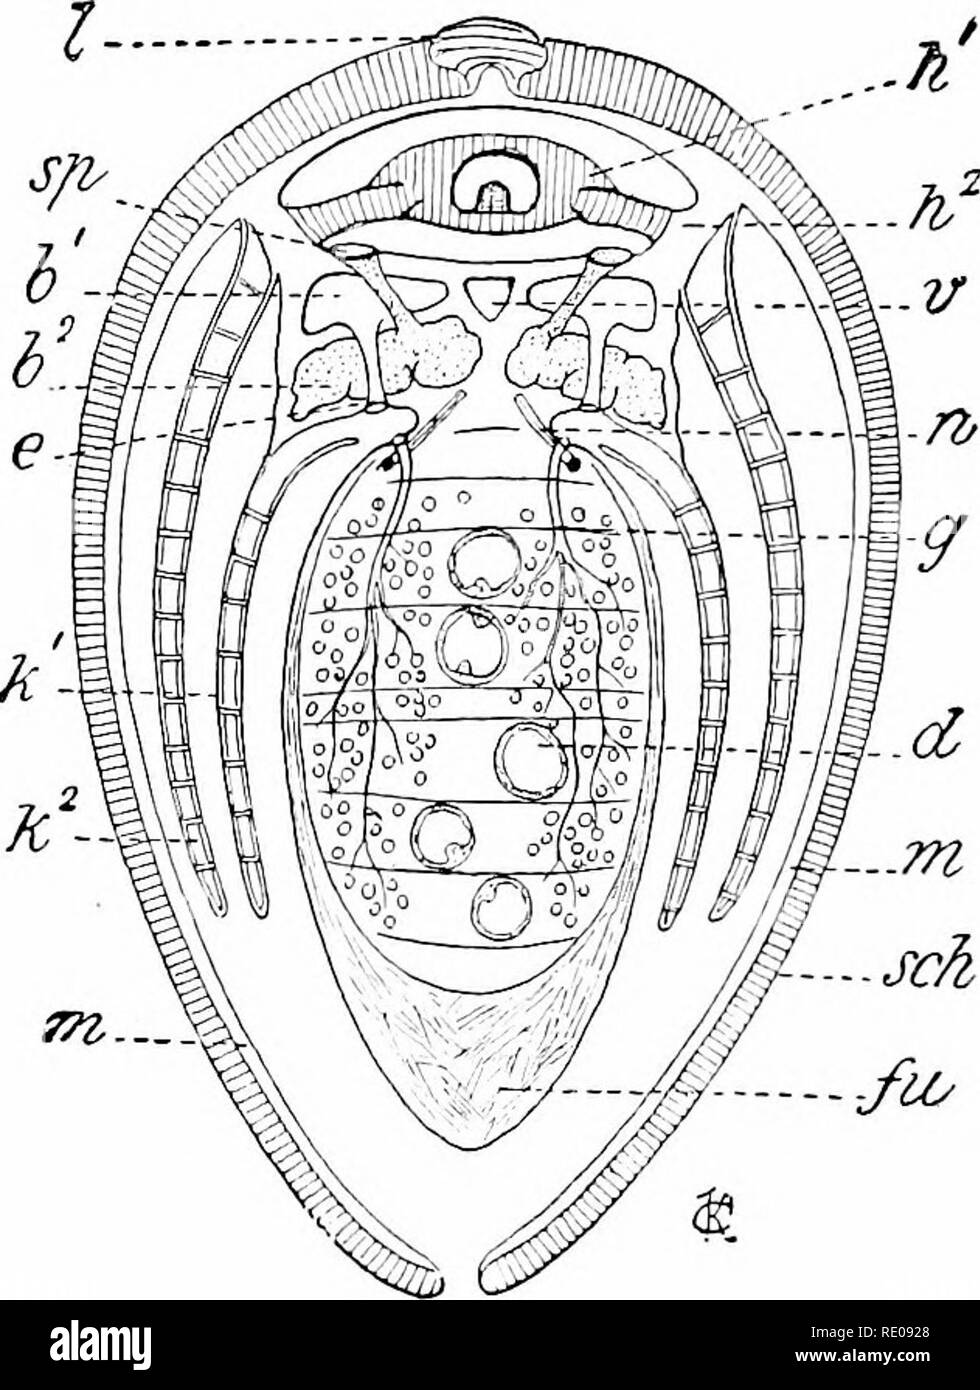 . A manual of zoology. Zoology. 3r,y MOLLUSC A. chamber and the larger lower respiratory cavity. Into the cloaca empty tlie anus and the water which has passed over the gills; it opens to the exterior through the excurrent siphon. The inciirrent siphon leads into the branchial chamber. In front of the gills are two more pairs of leaf-like lobes, the labial palpi, between which is the mouth. The gills are variouslj' developed. The Nuculidfe—the most primitive of living Acephala—have true ctenidia consisting of an axis grown to the body and an inner and an outer row of gill leaves (fig. 355). Fr - Stock Image